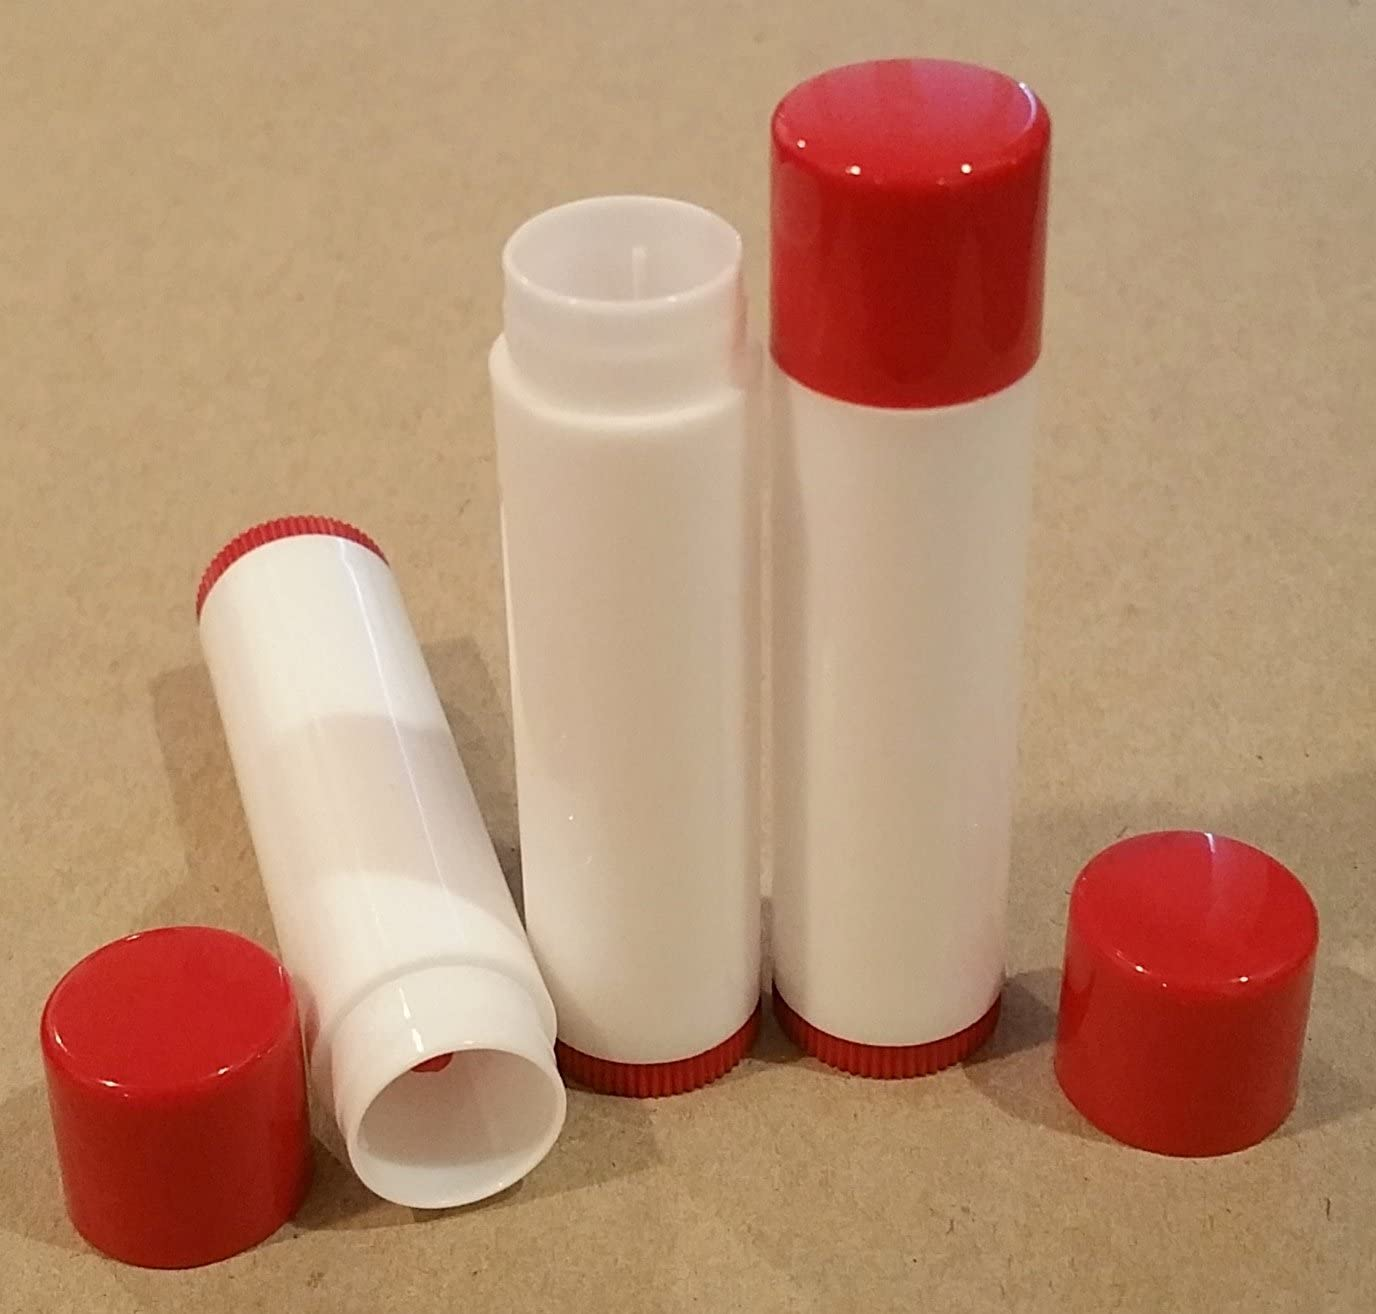 10 NEW Empty Maroon Red Top and bottom White Tube LIP Balm Chapstick Tubes Containers .15 oz / 5 ml Tube Make Your Own Chapstick Lip Balm DIY At Home with Caps